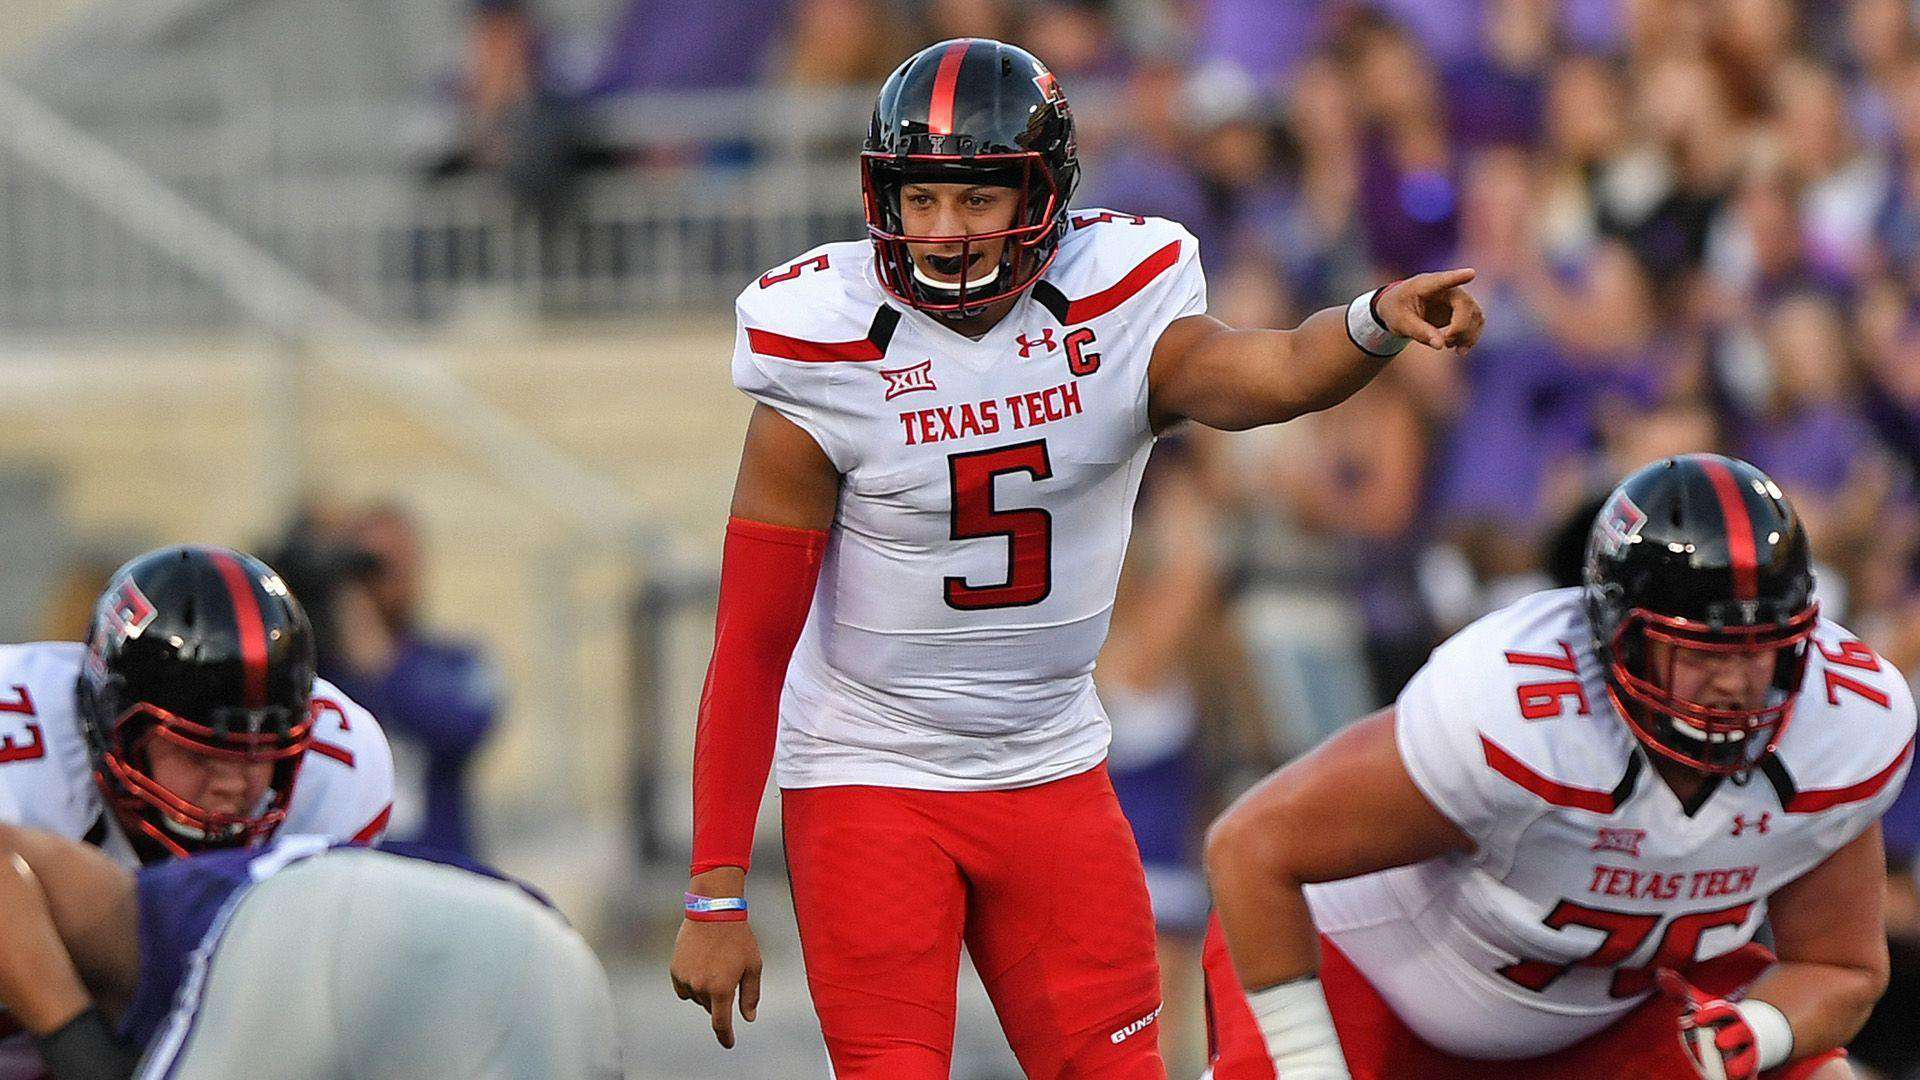 Download Patrick Mahomes Is Showing Hand Straight Wearing White And Red Sports Dress And Black Helmet Hd Sports Hd